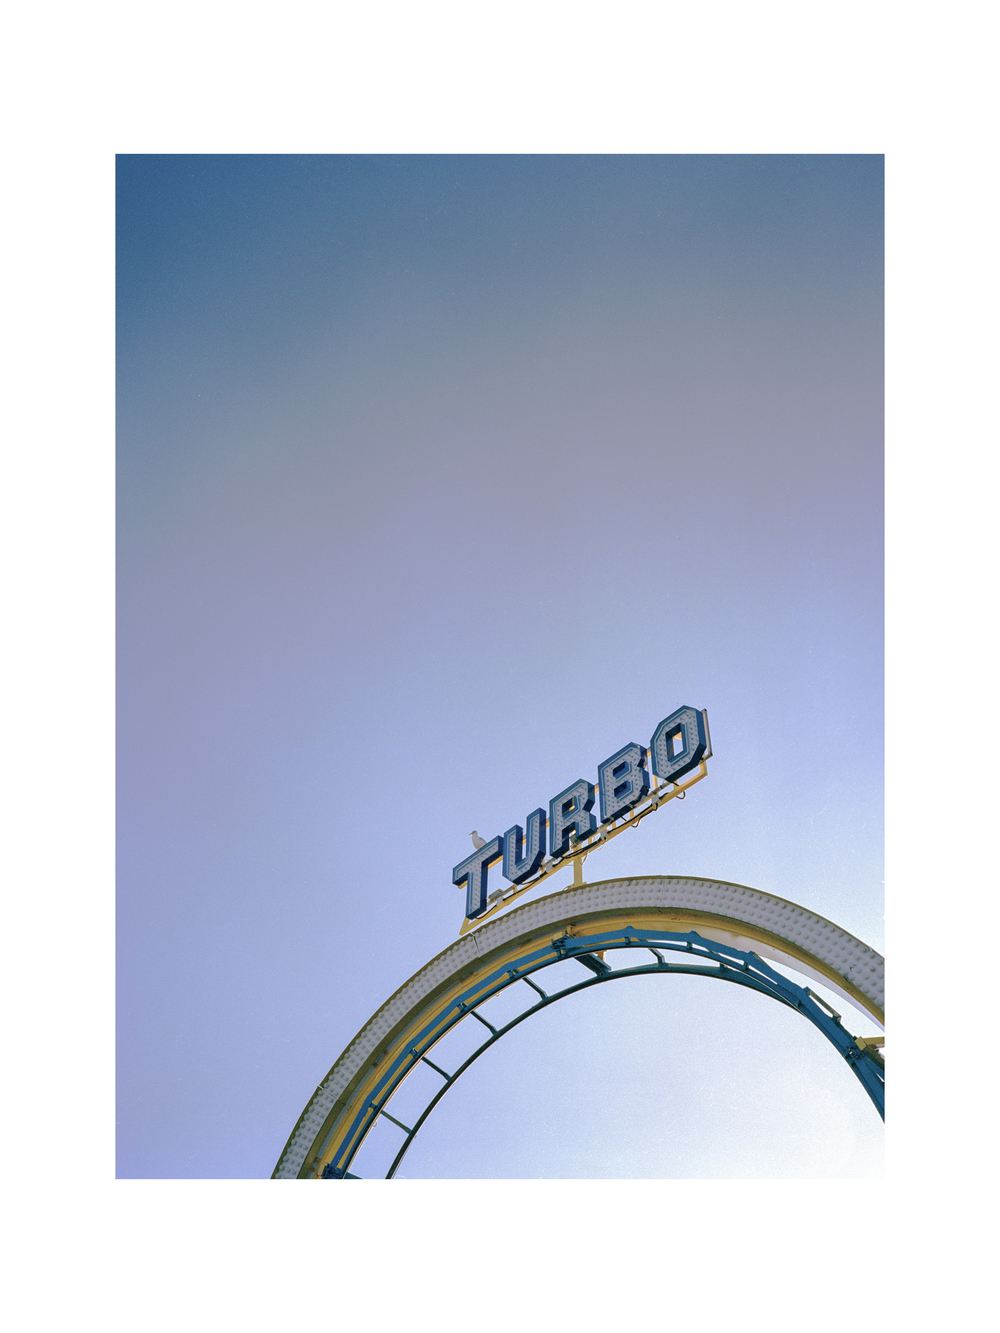 Turbo. Brighton